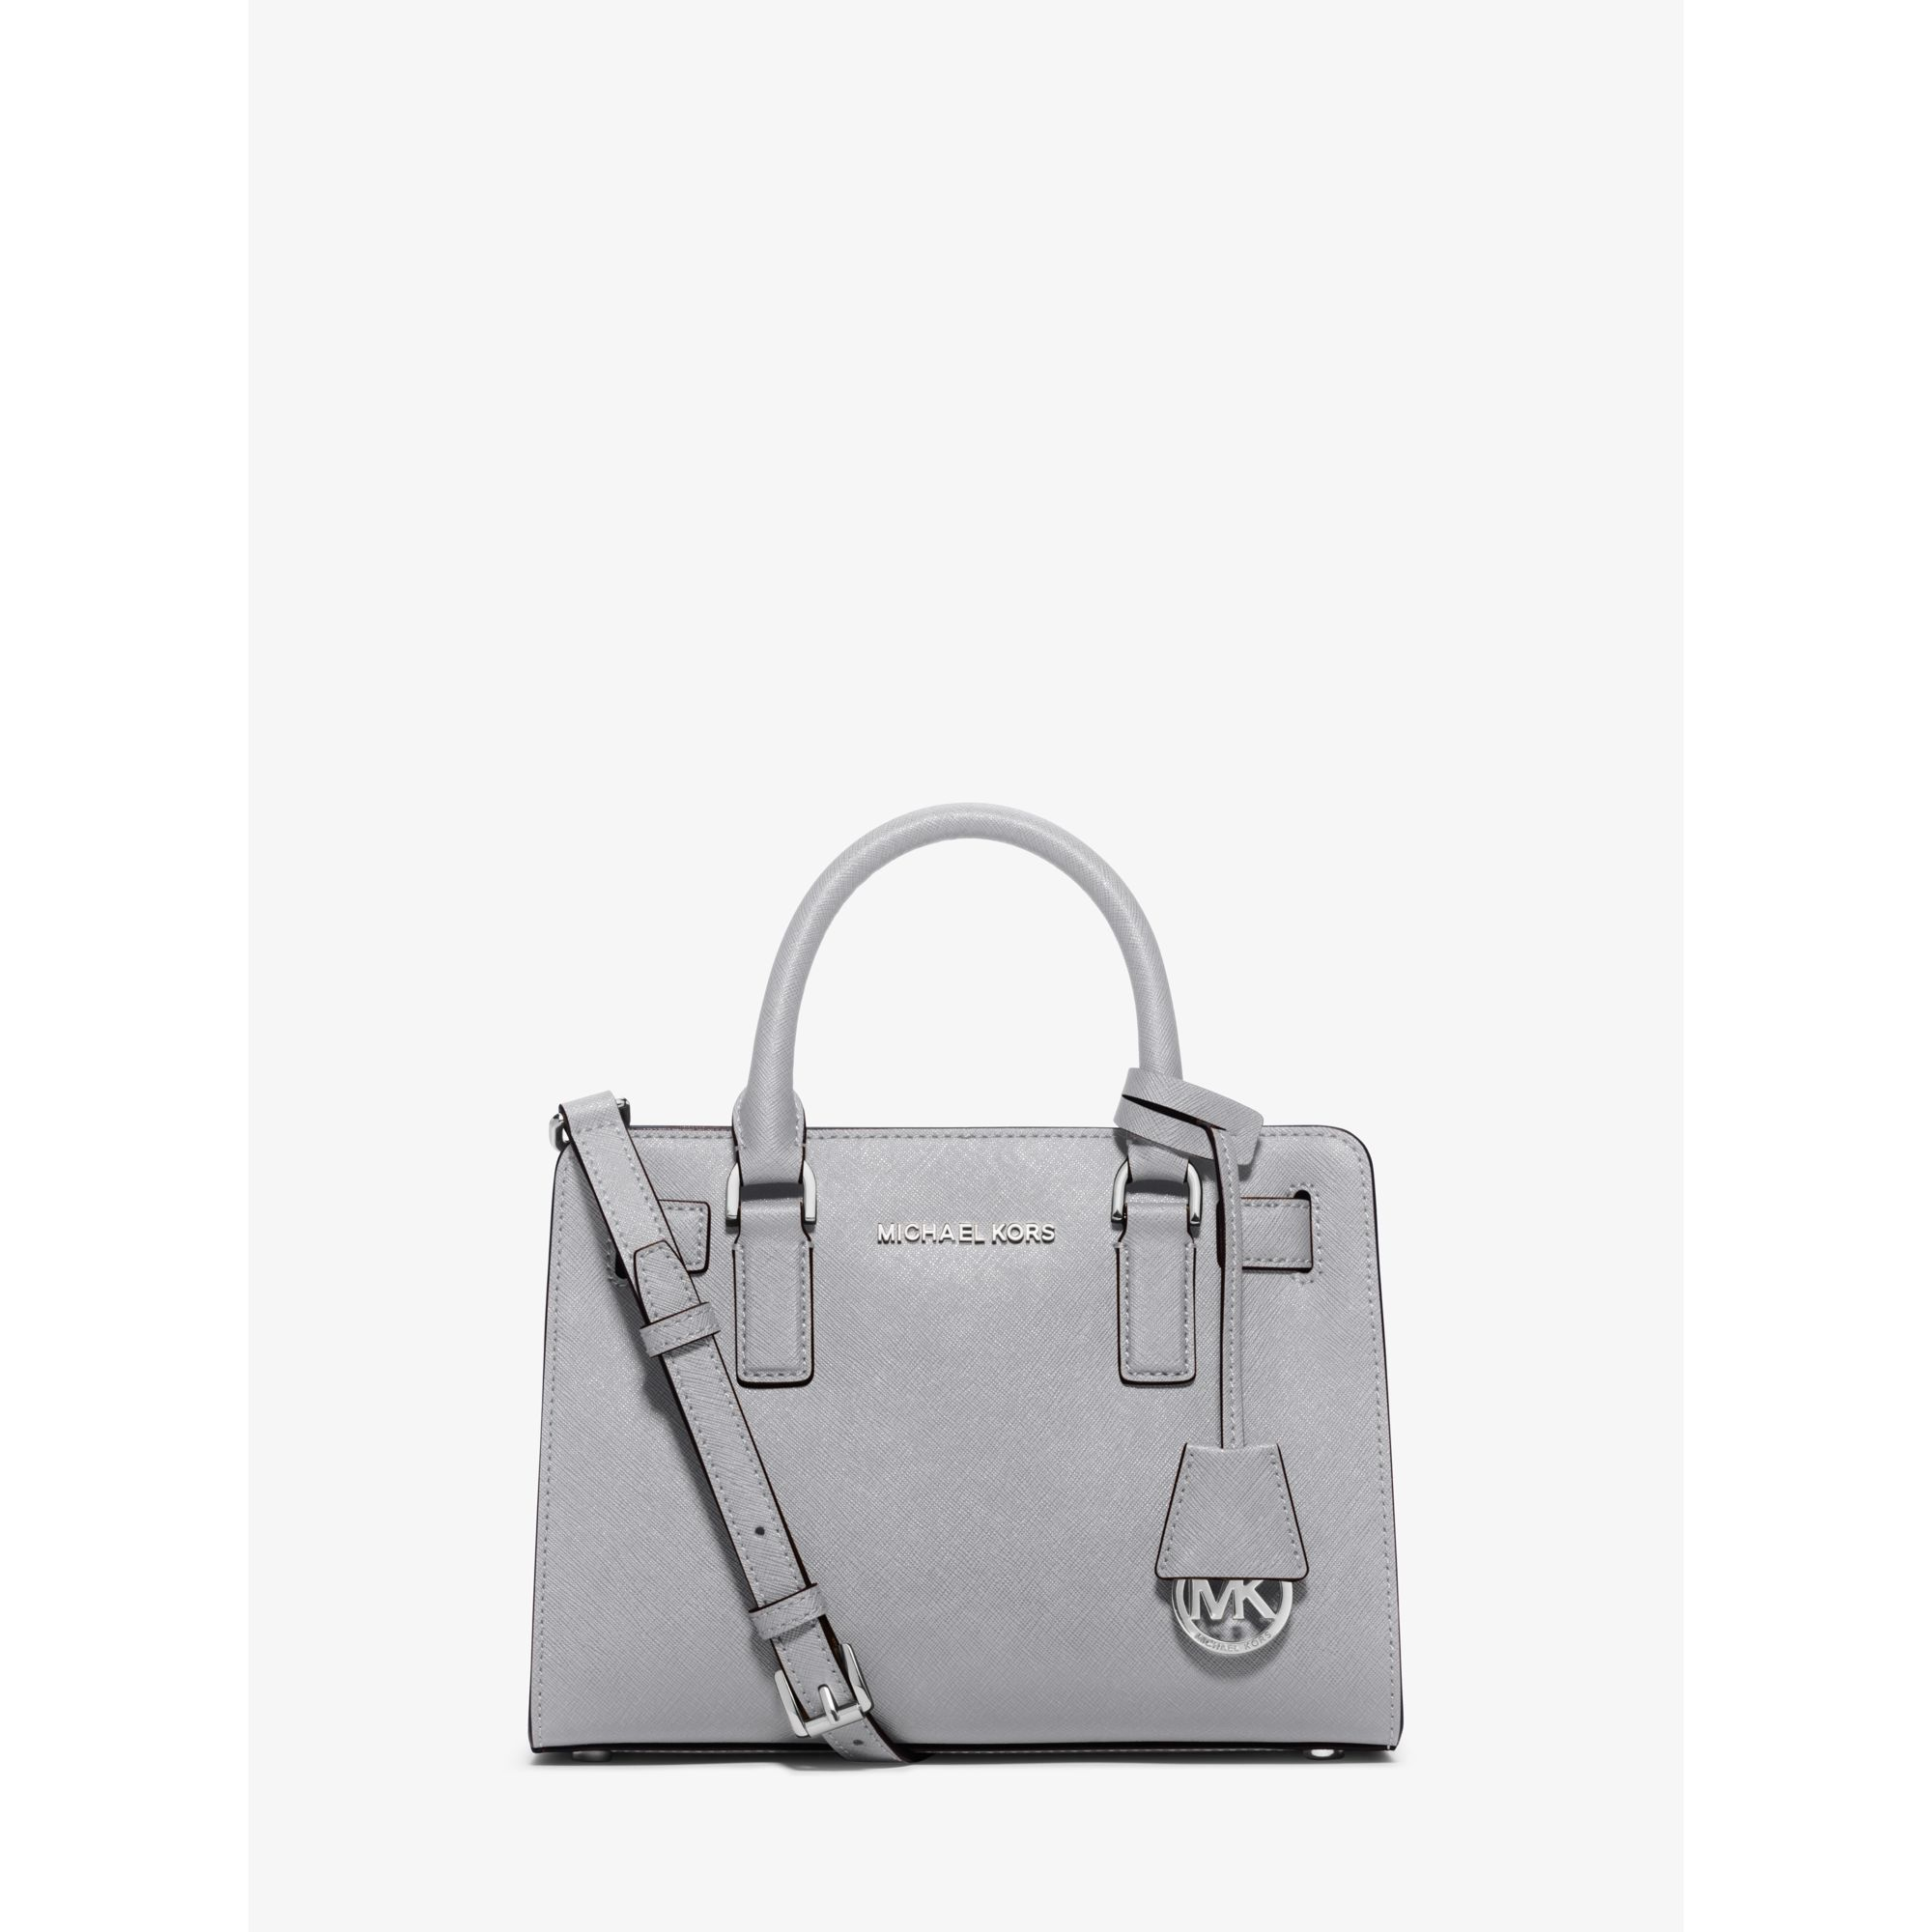 1fa8d9ee620d Lyst - Michael Kors Dillon Small Saffiano Leather Satchel in Gray